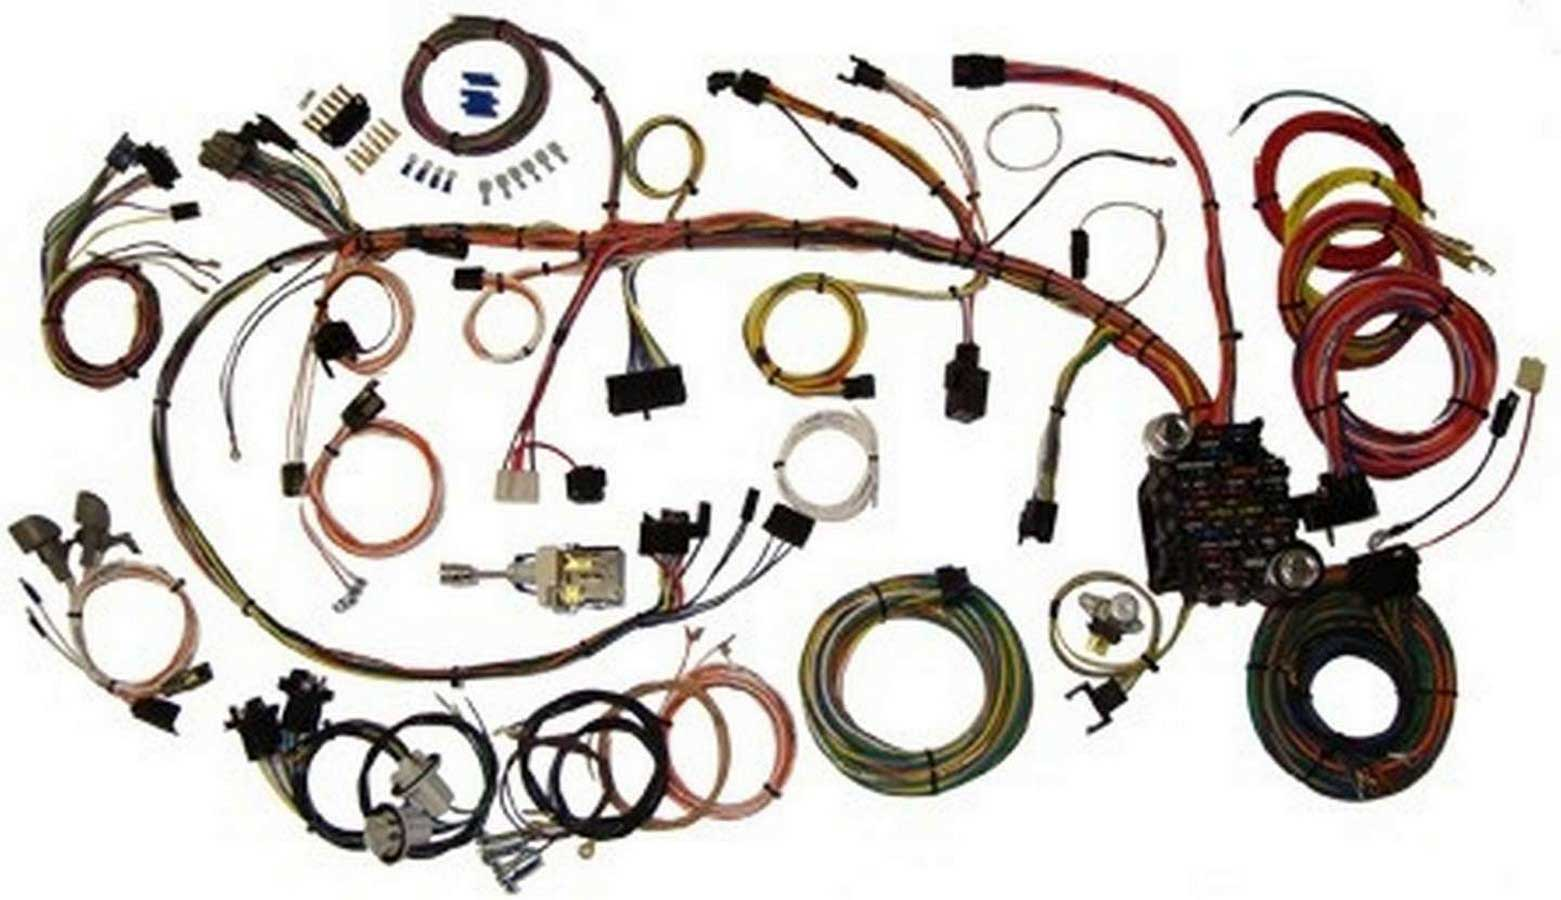 1967 Camaro Engine Wiring Harness On 1969 Camaro Wiring Harness Under